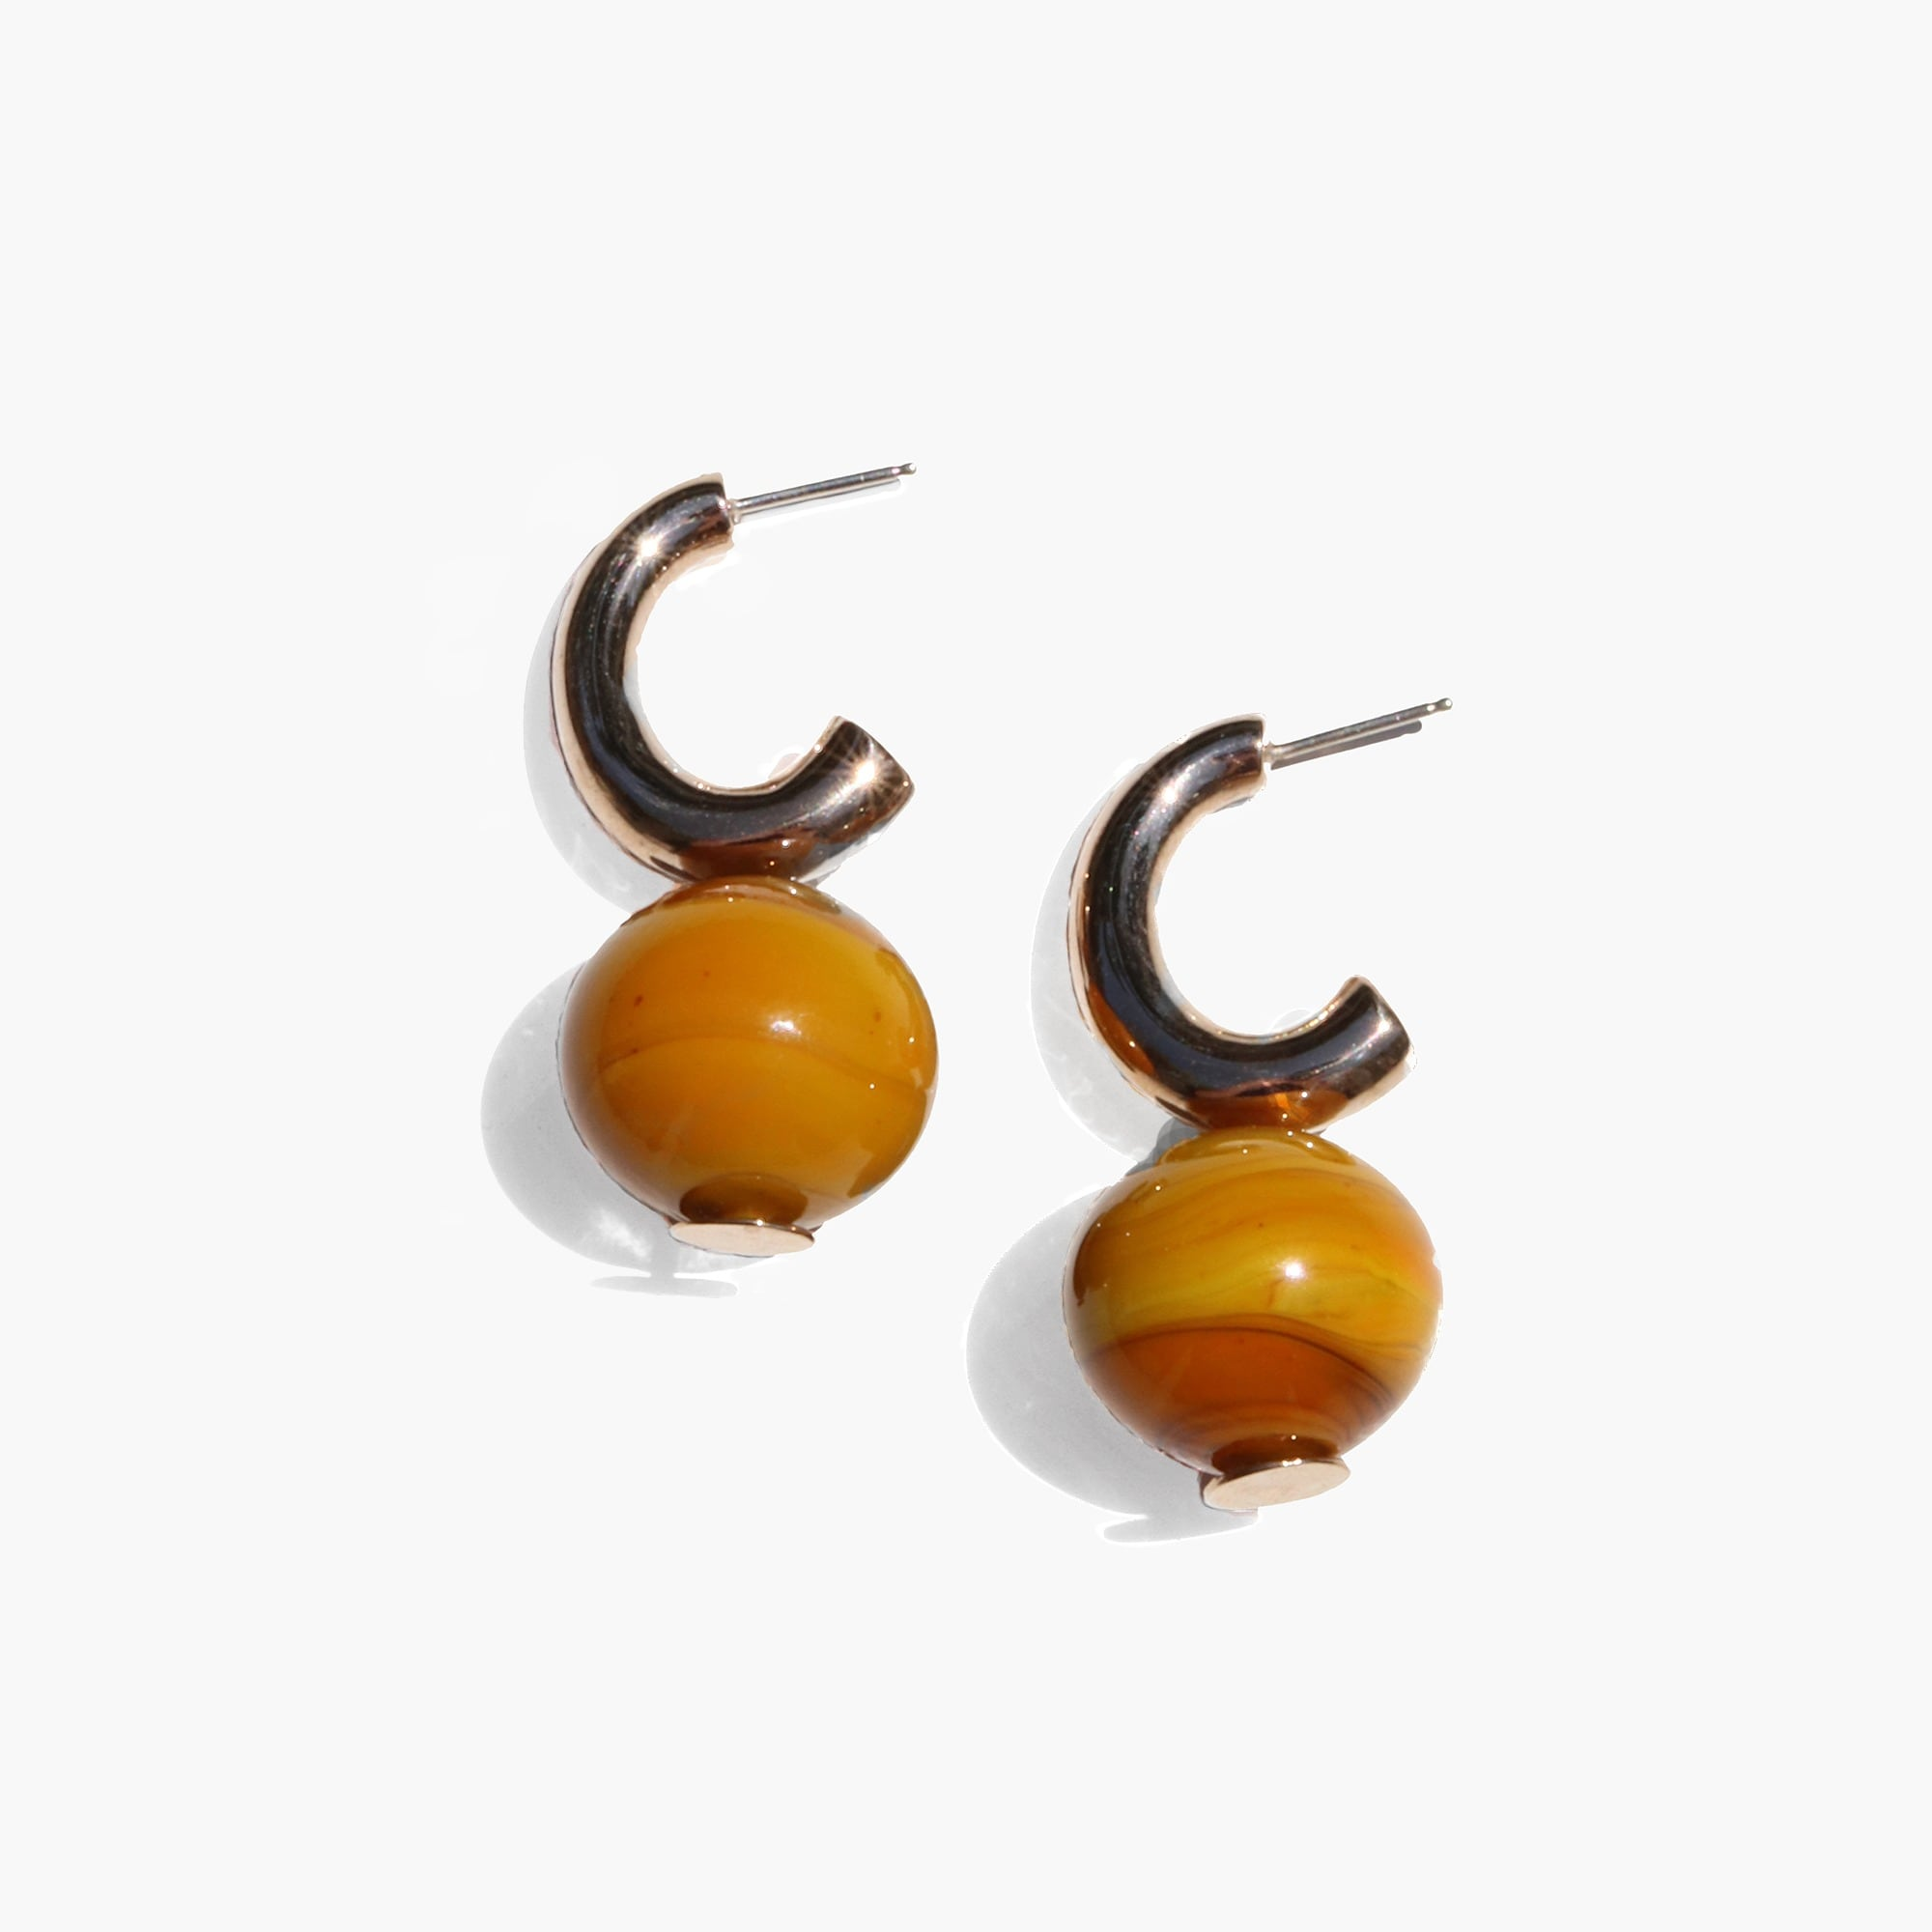 womens Modern Weaving™ C-curve earrings